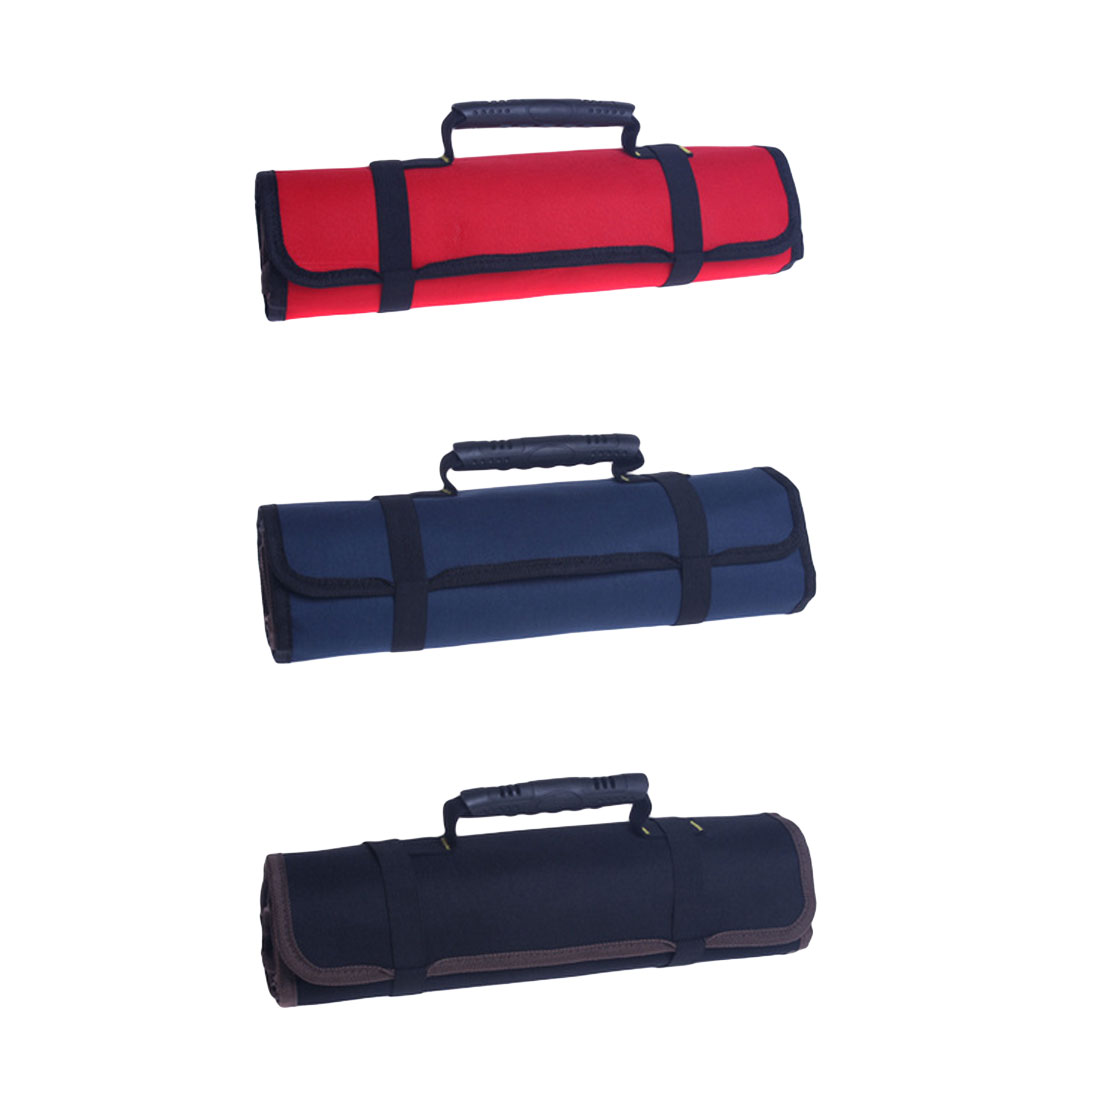 Multifunction Tool Bag Practical Carrying Handles Oxford Canvas Wrench Storage Roll Bag Tool Instrument Case 585mm X 355mm